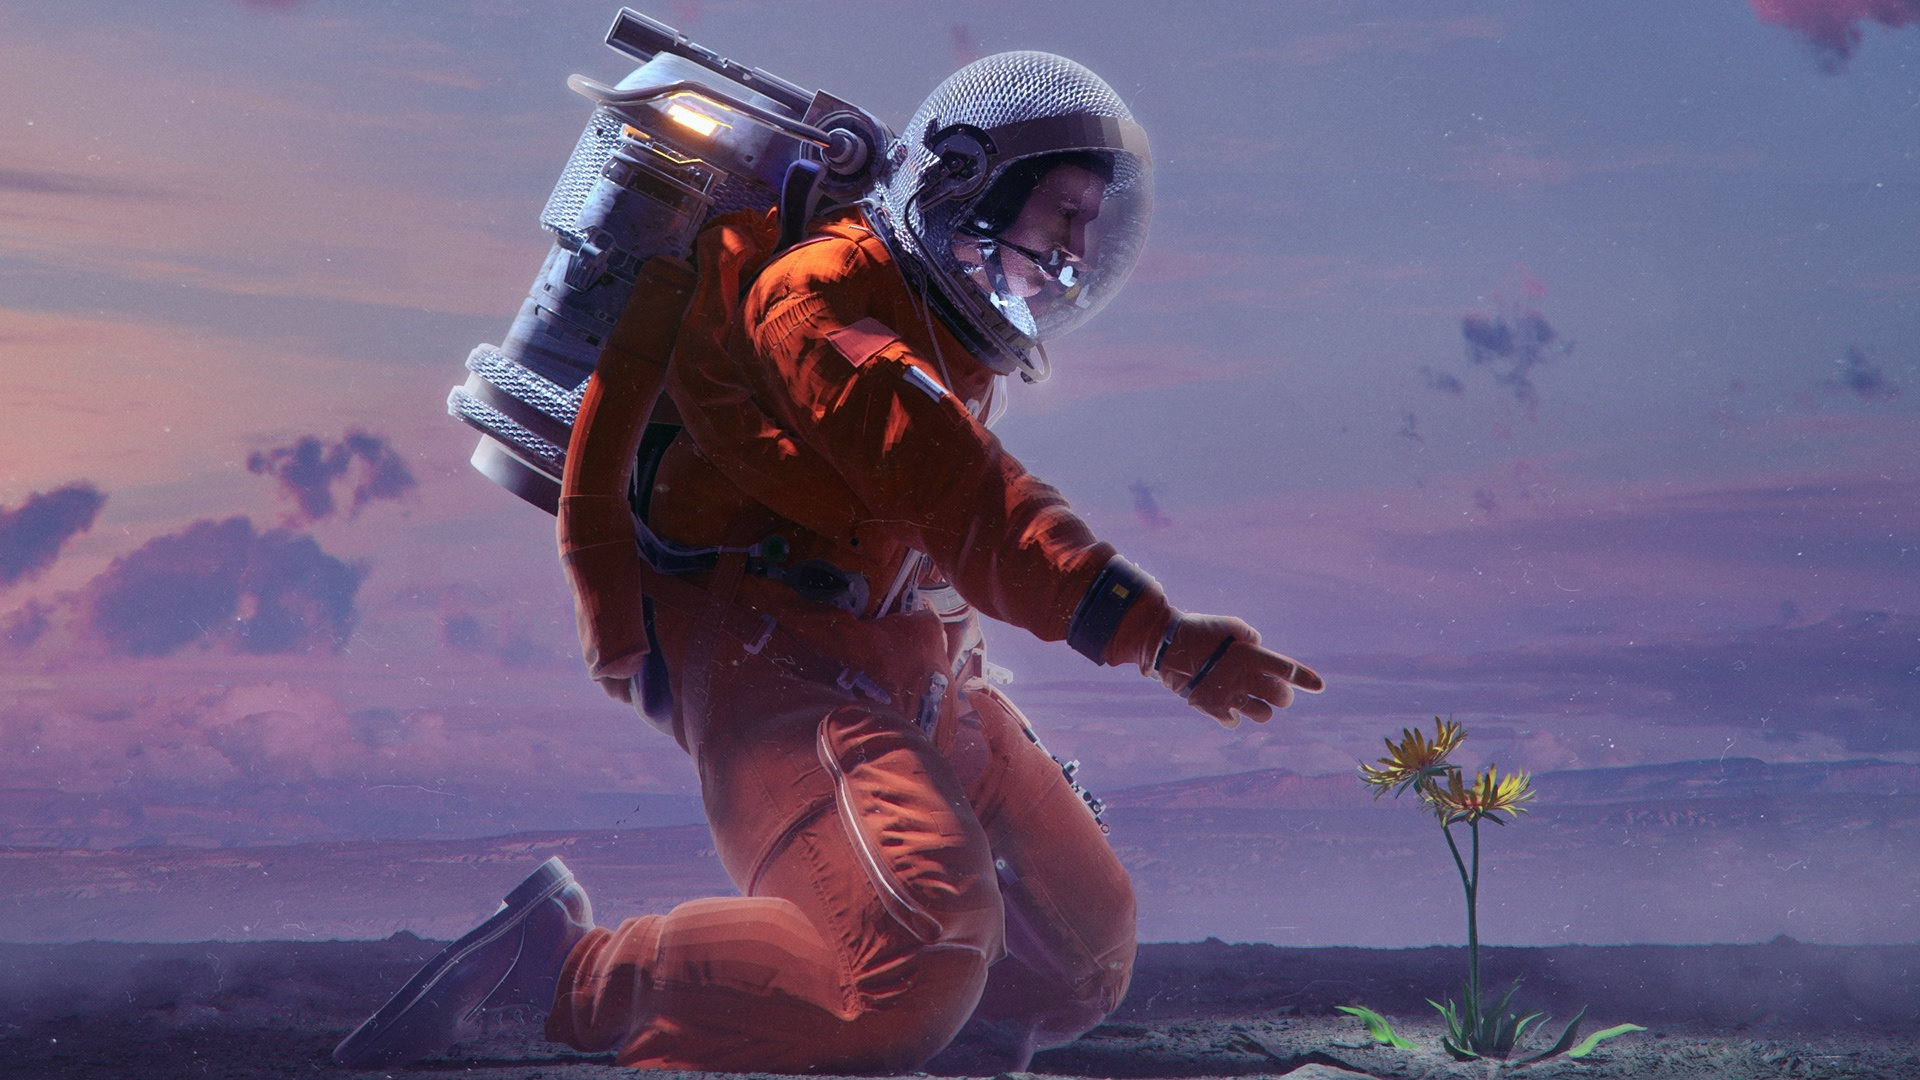 Astronaut Art Wallpaper